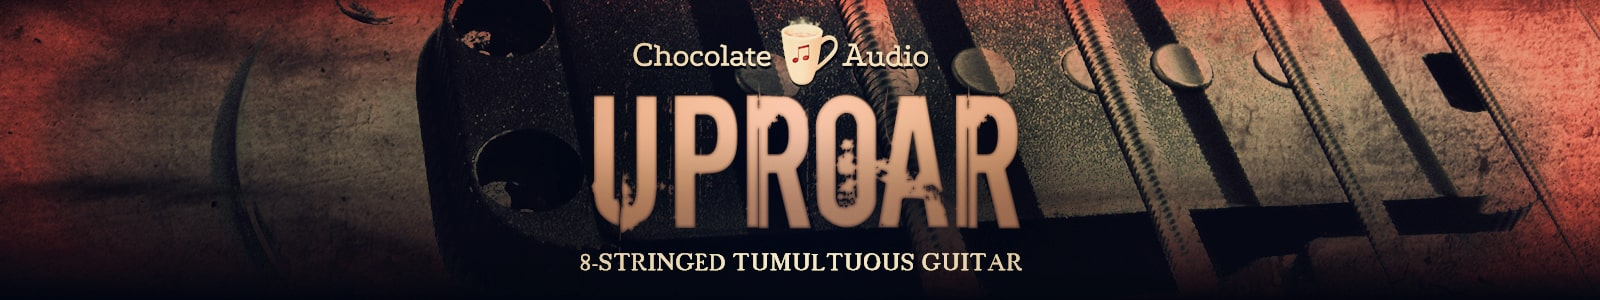 uproar vol 1 by chocolate audio